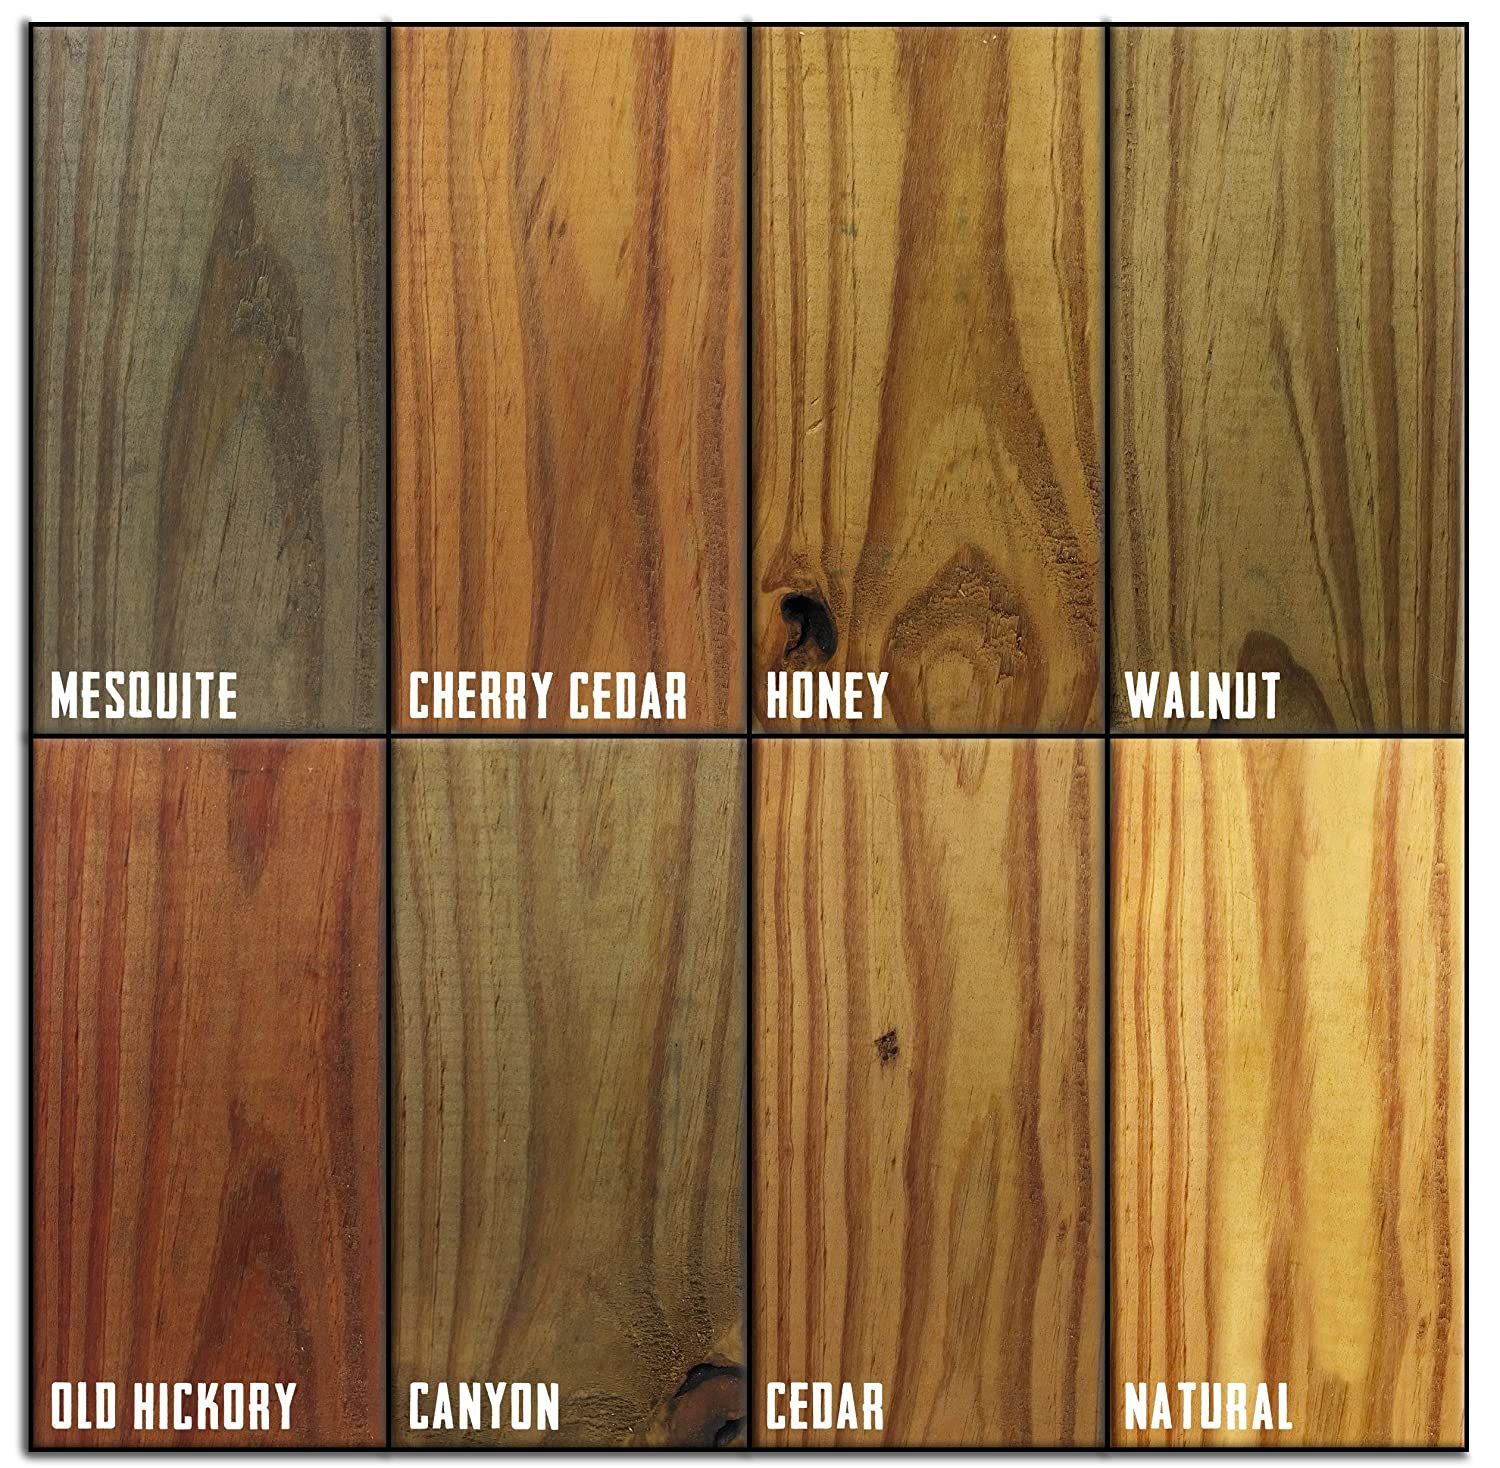 Rockwood semi transparent deck fence stain cedar 5 gal amazon rockwood semi transparent deck fence stain cedar 5 gal amazon diy tools baanklon Image collections